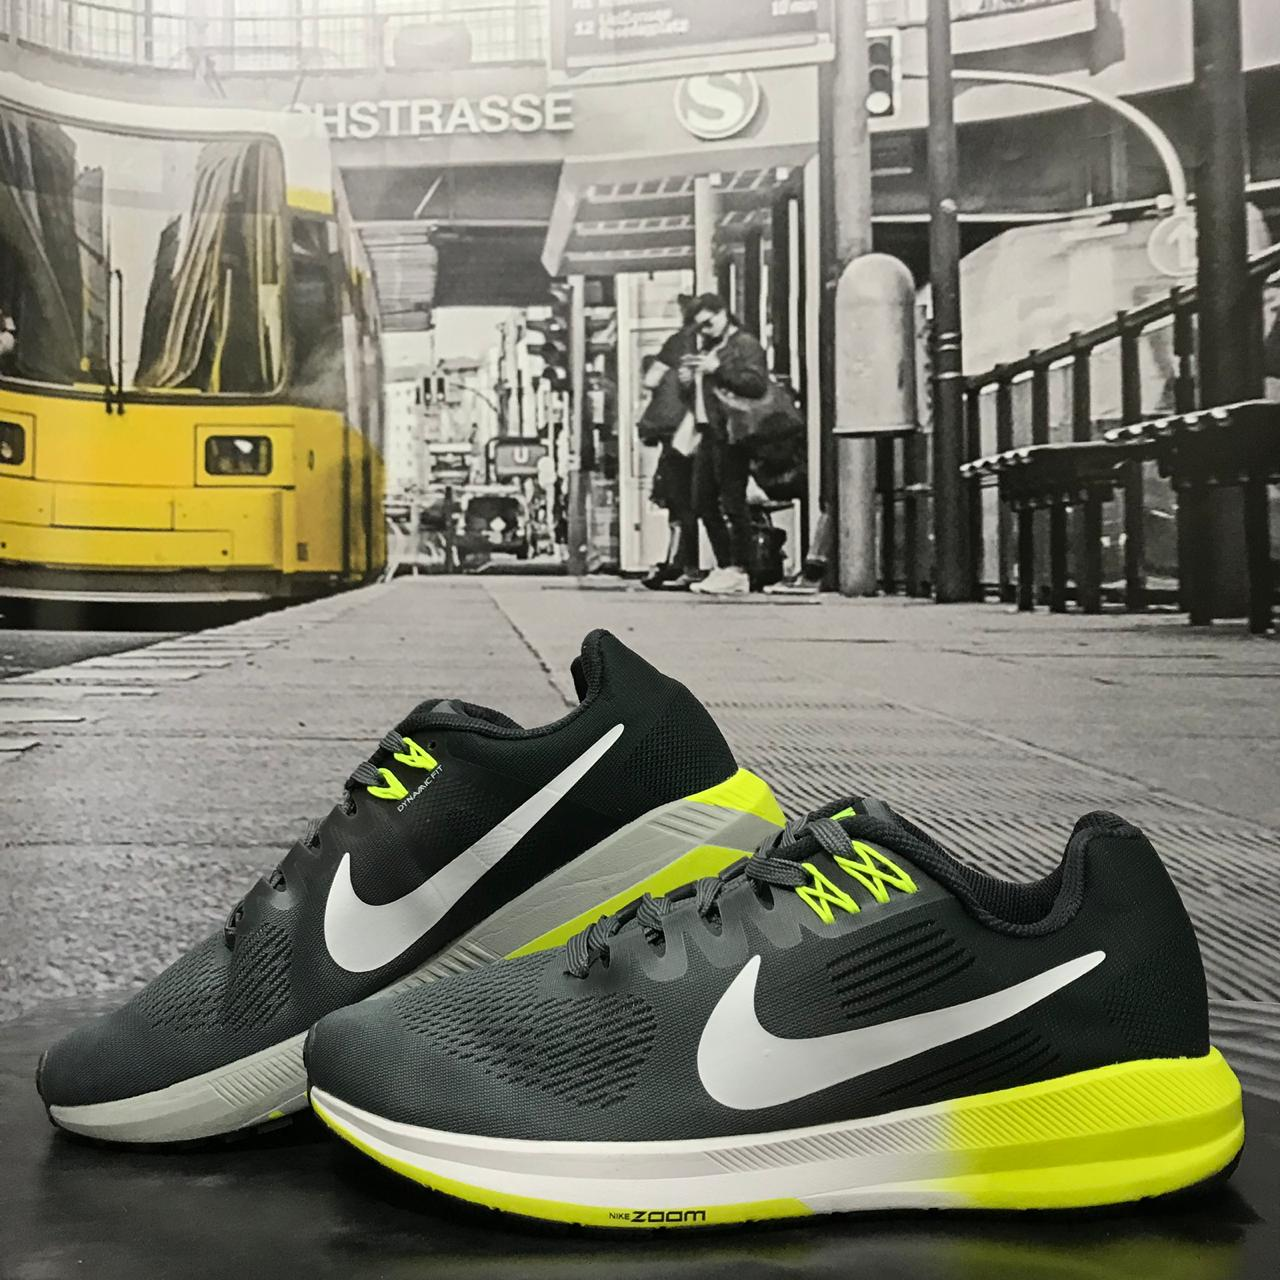 factory authentic 8e4b5 132a2 Tenis Nike running Importados